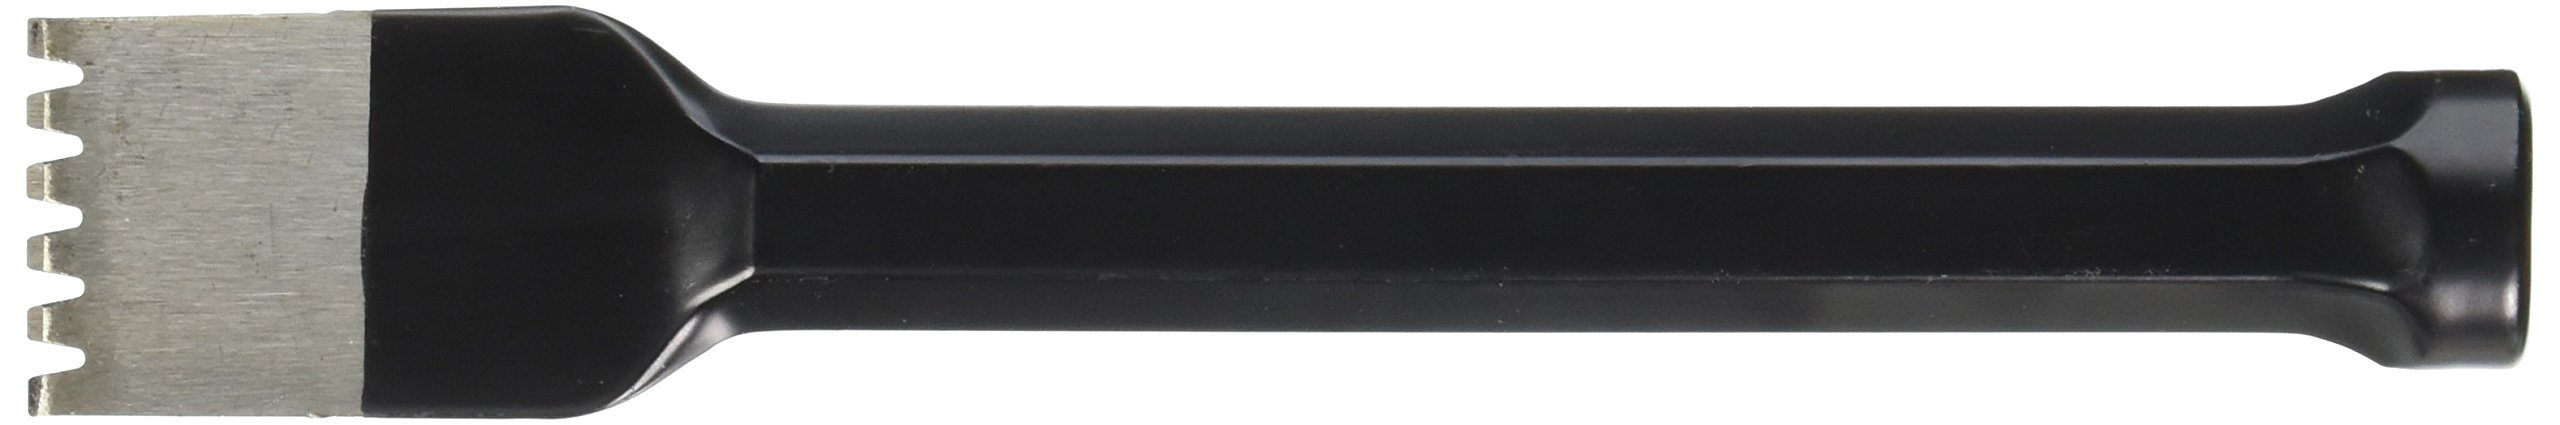 Kraft Tool BL412  Toothed Stone Mason's Chisel, 1-1/4-Inch